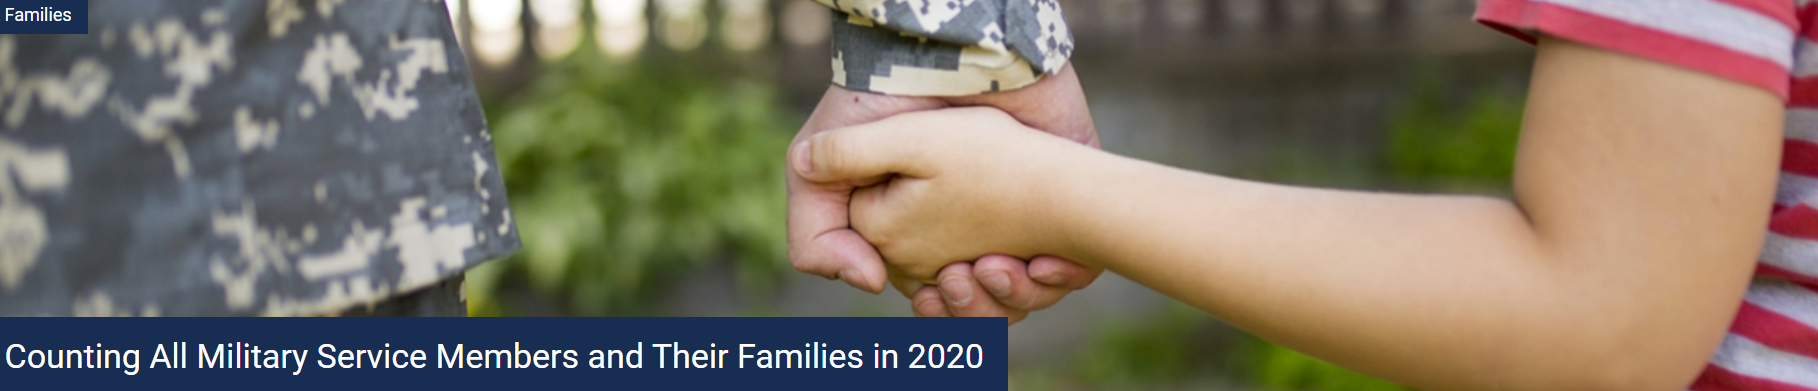 Military Service Members and Family Count